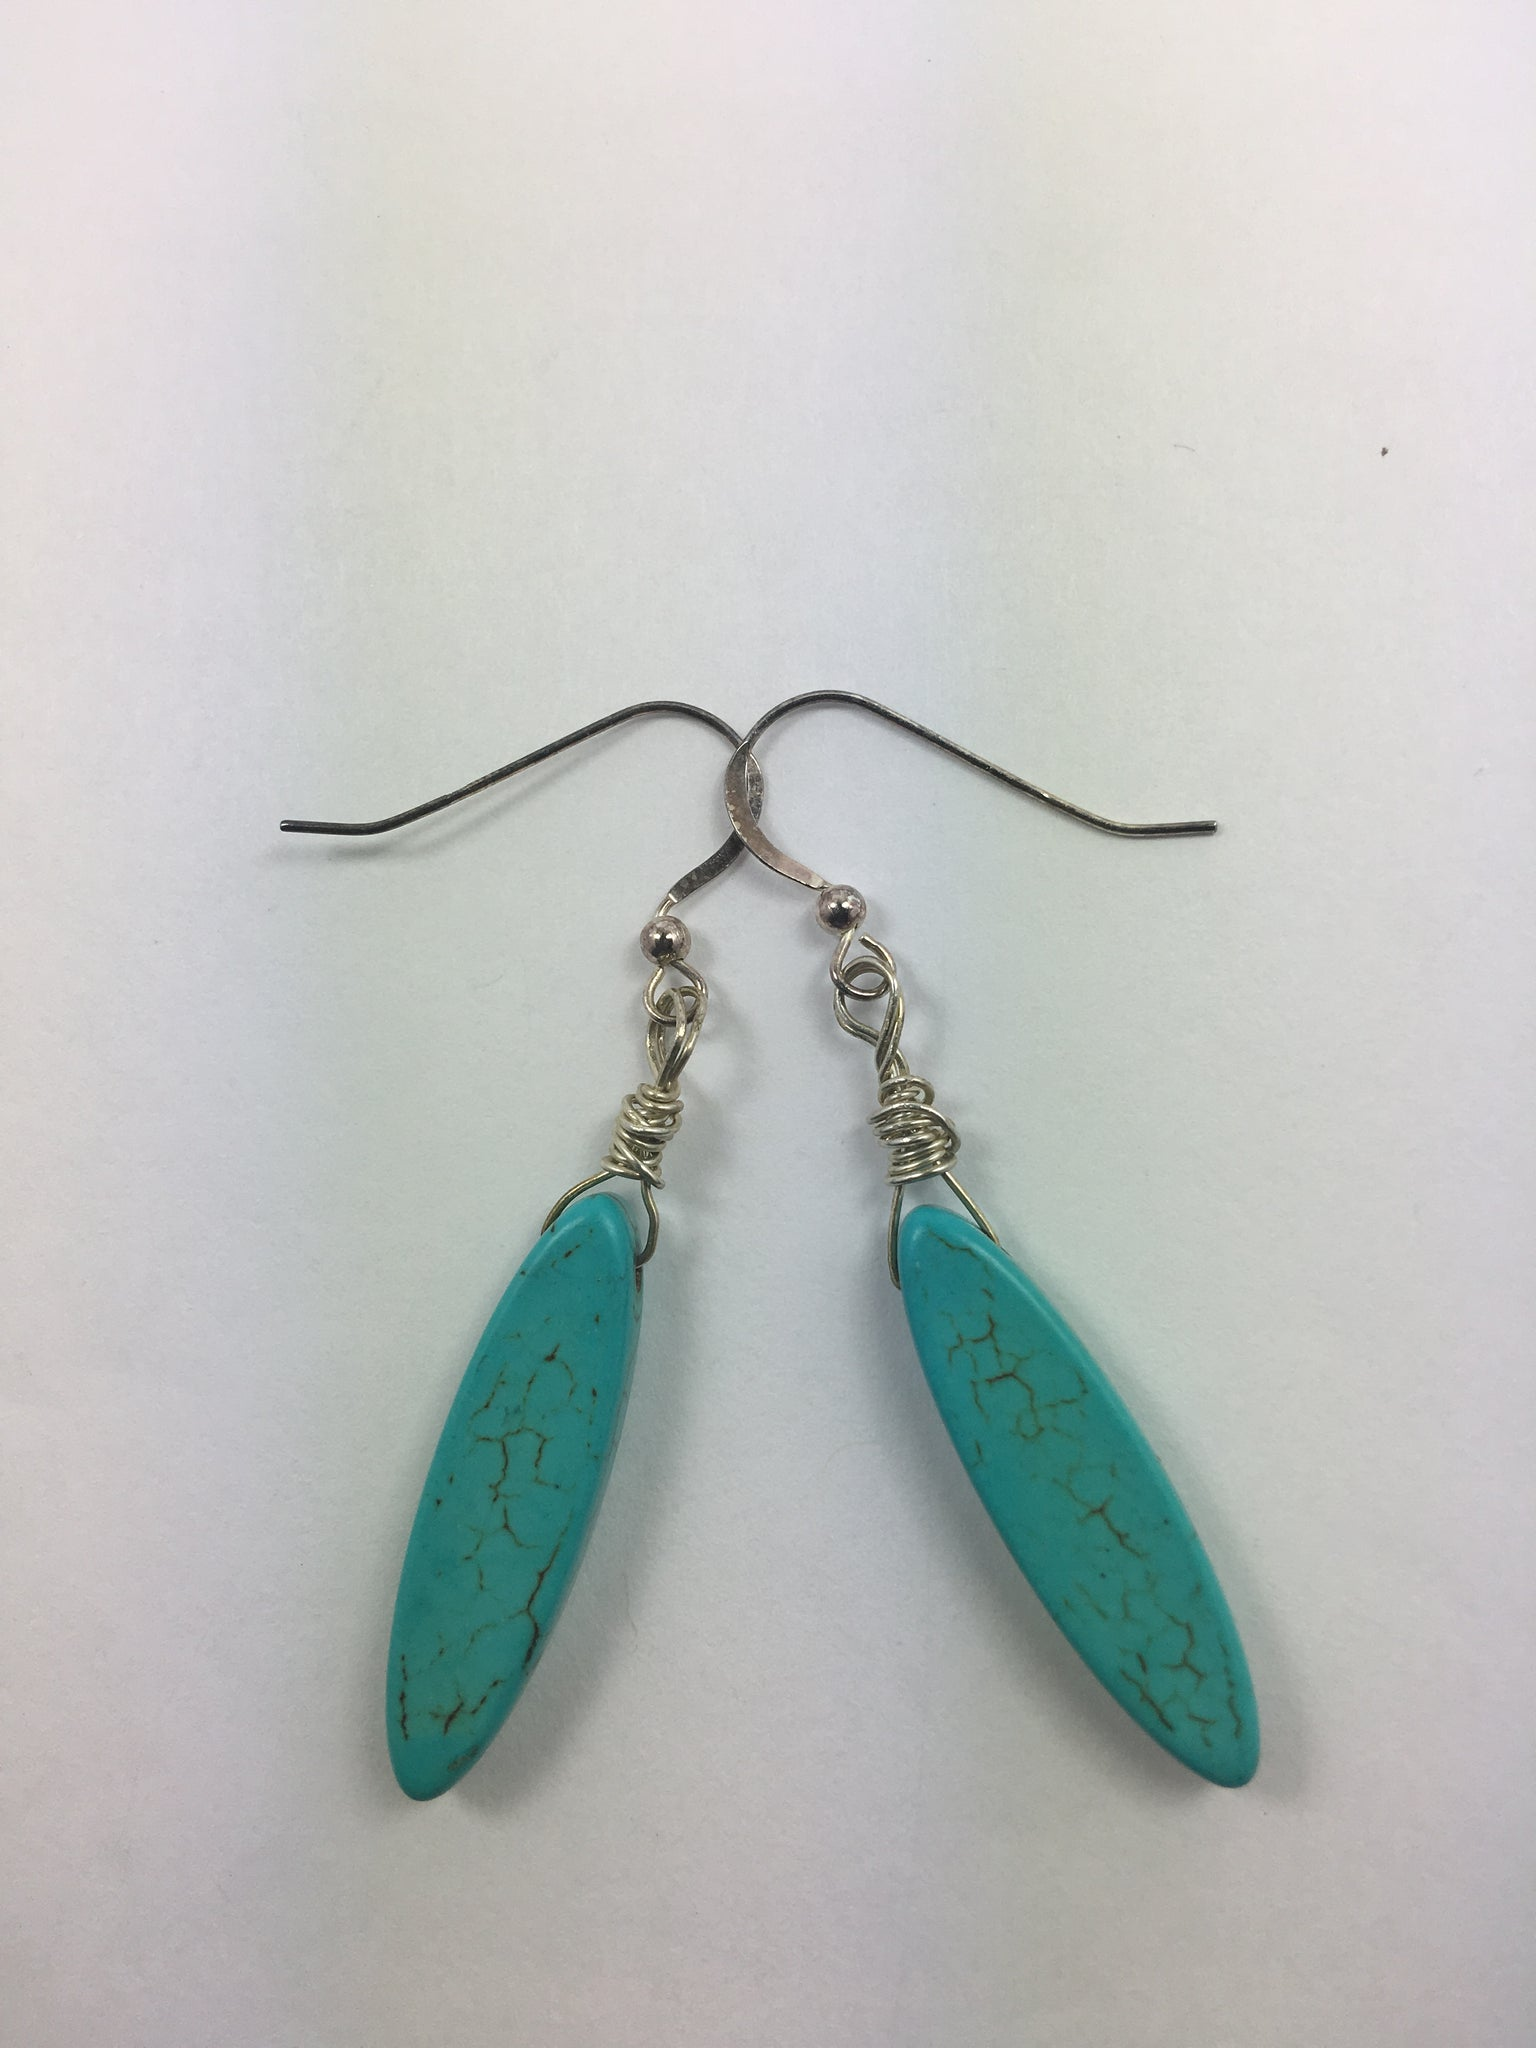 Magnestite Turquoise Earrings - WATERBURY JEWELS